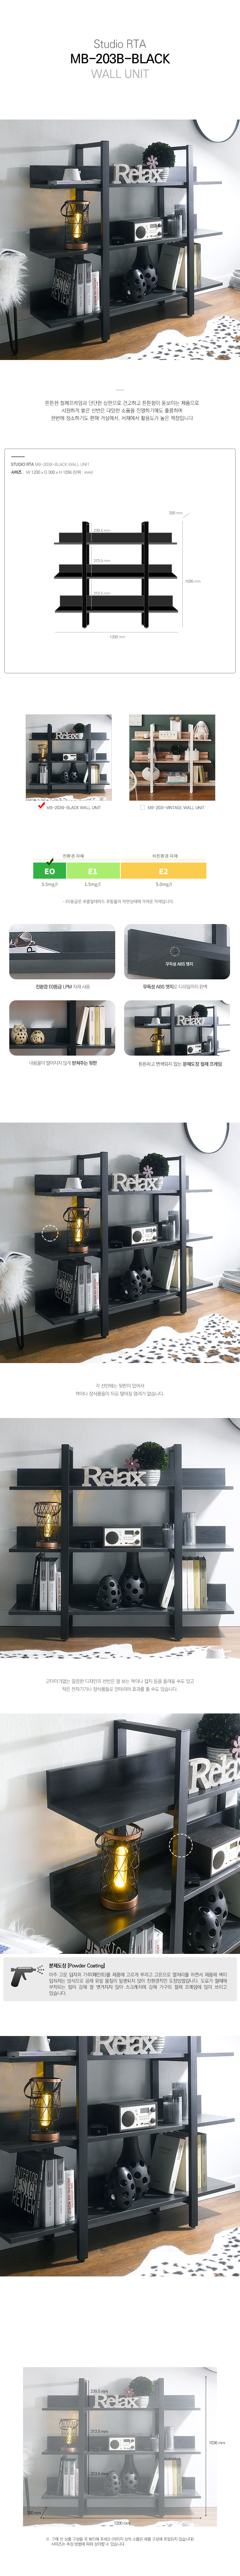 MB-203B-Black_Wall_Unit_20180322.jpg